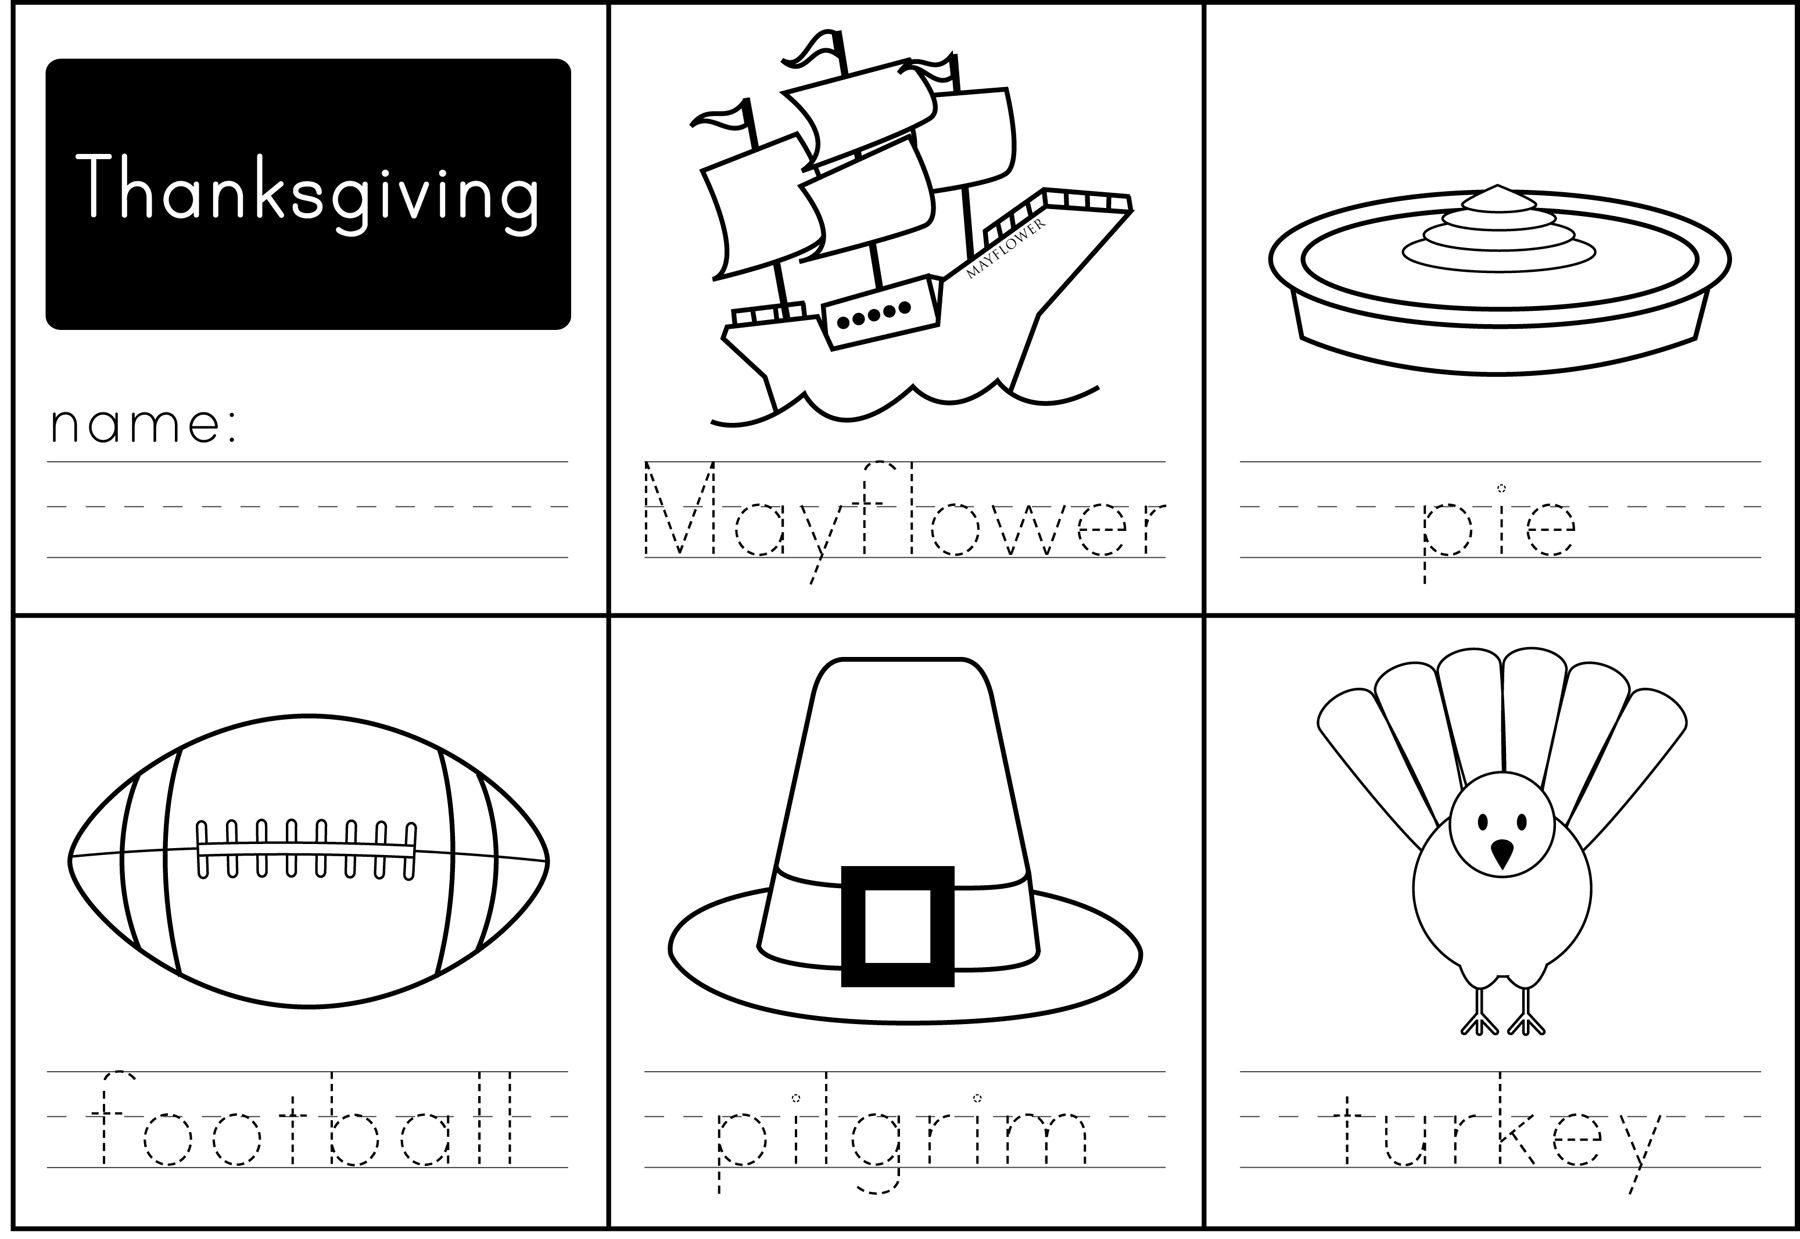 7 Best Images of Printable Turkey Worksheets - Free Printable ...